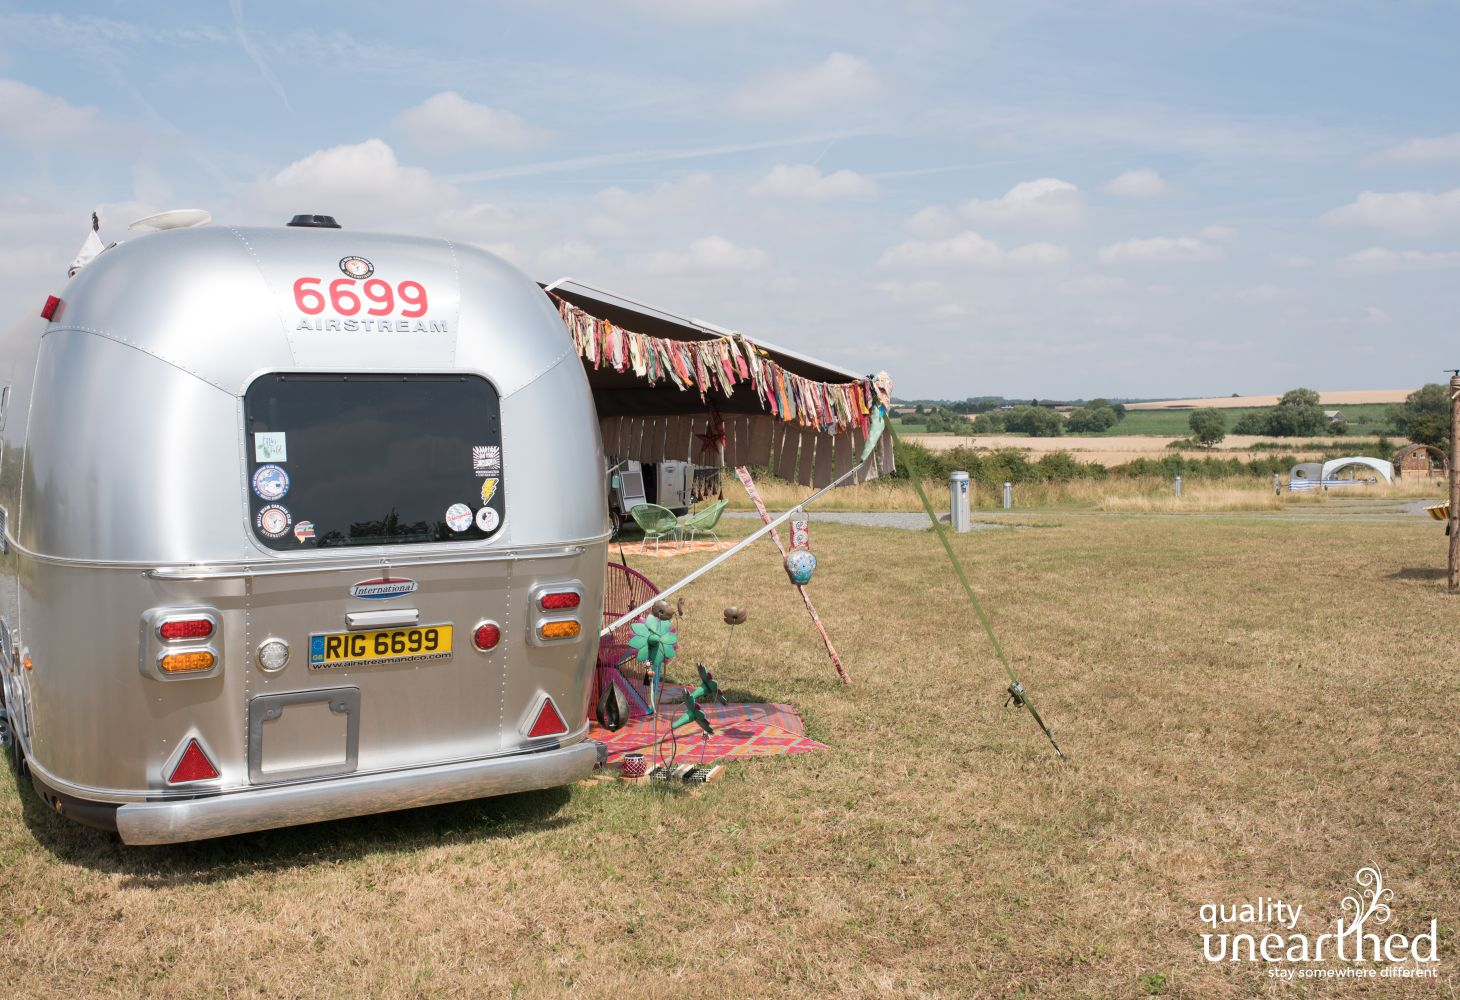 Ettie's Airstream in Warwickshire